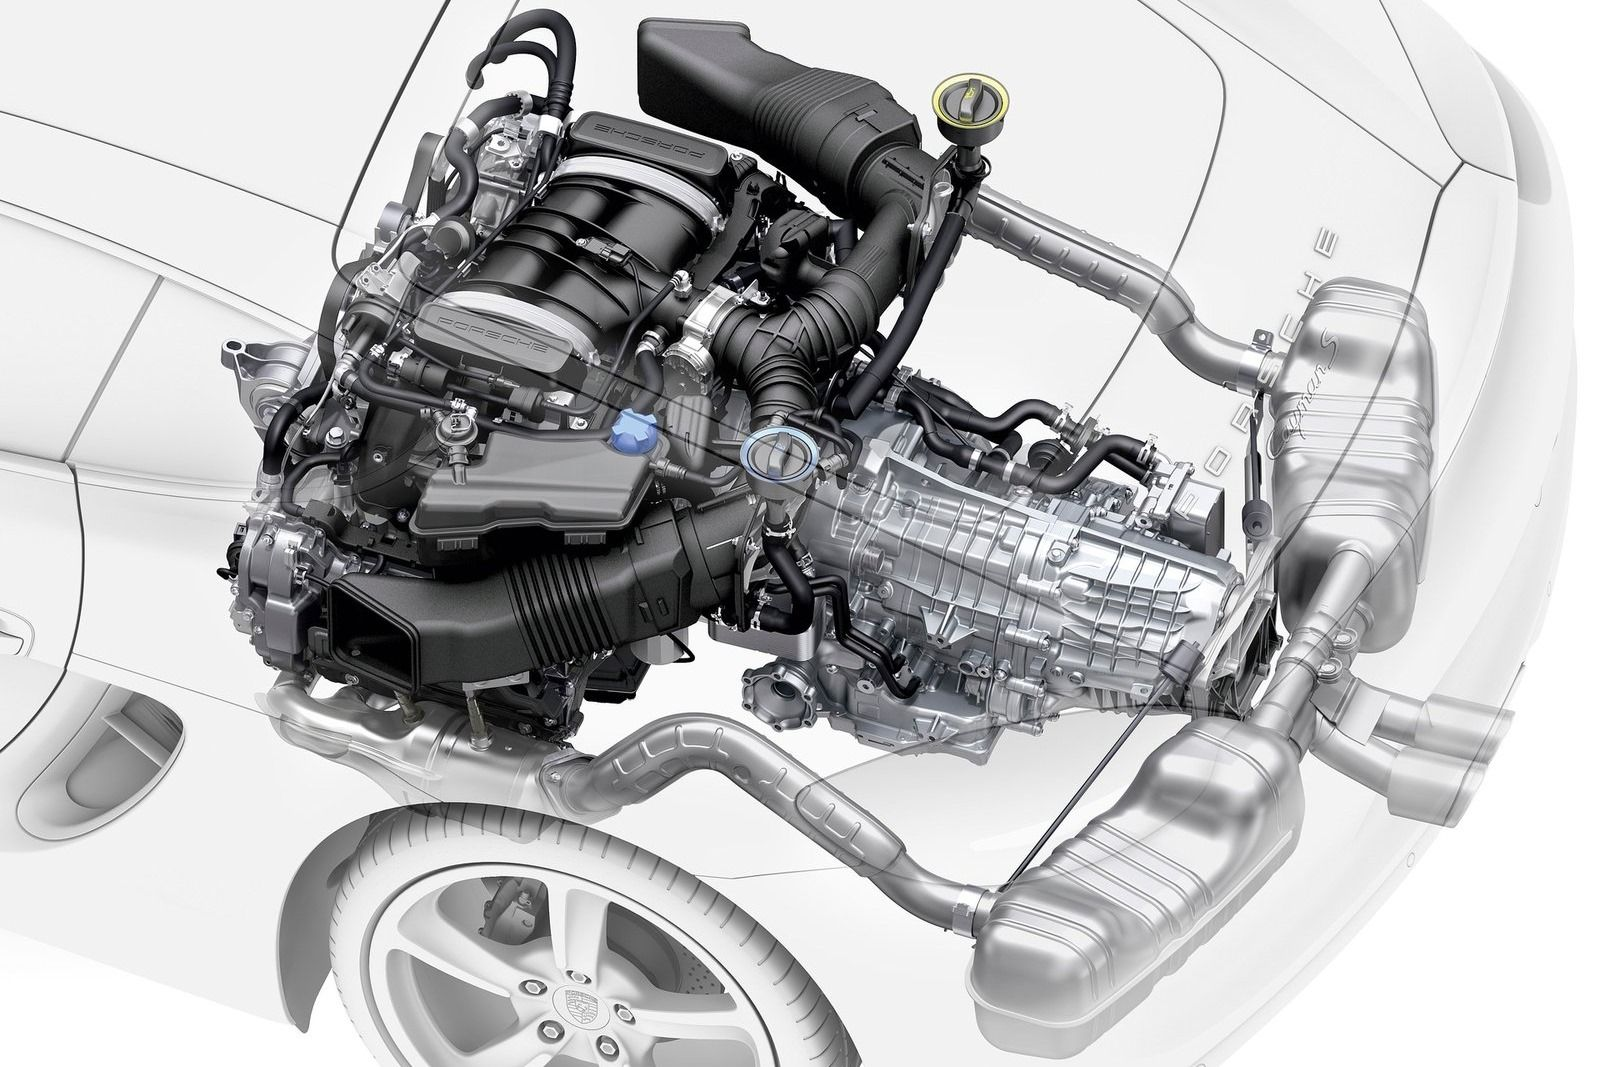 The new Porsche Boxster Flat 4 (not 6) cylinder turbo engine layout ...